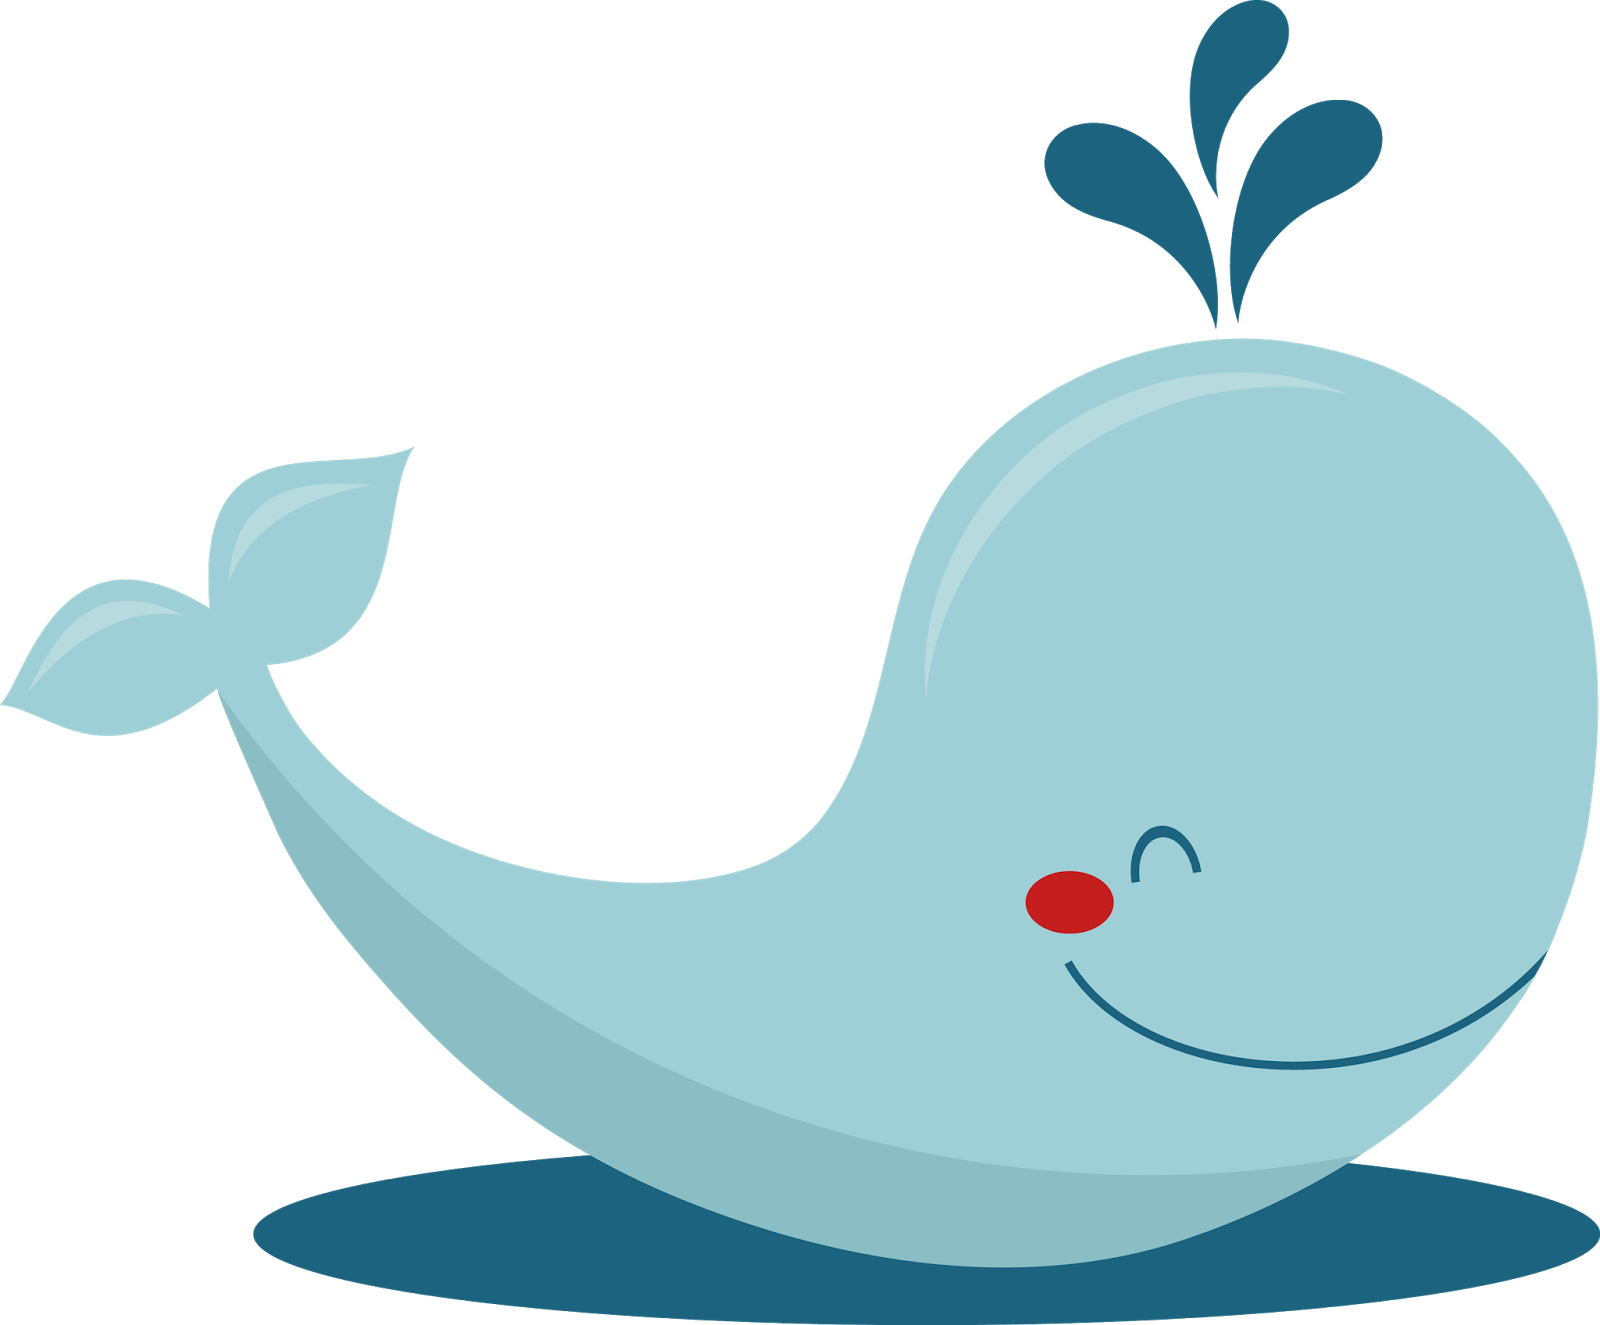 Clipart mom office. Cartoon whale clip art